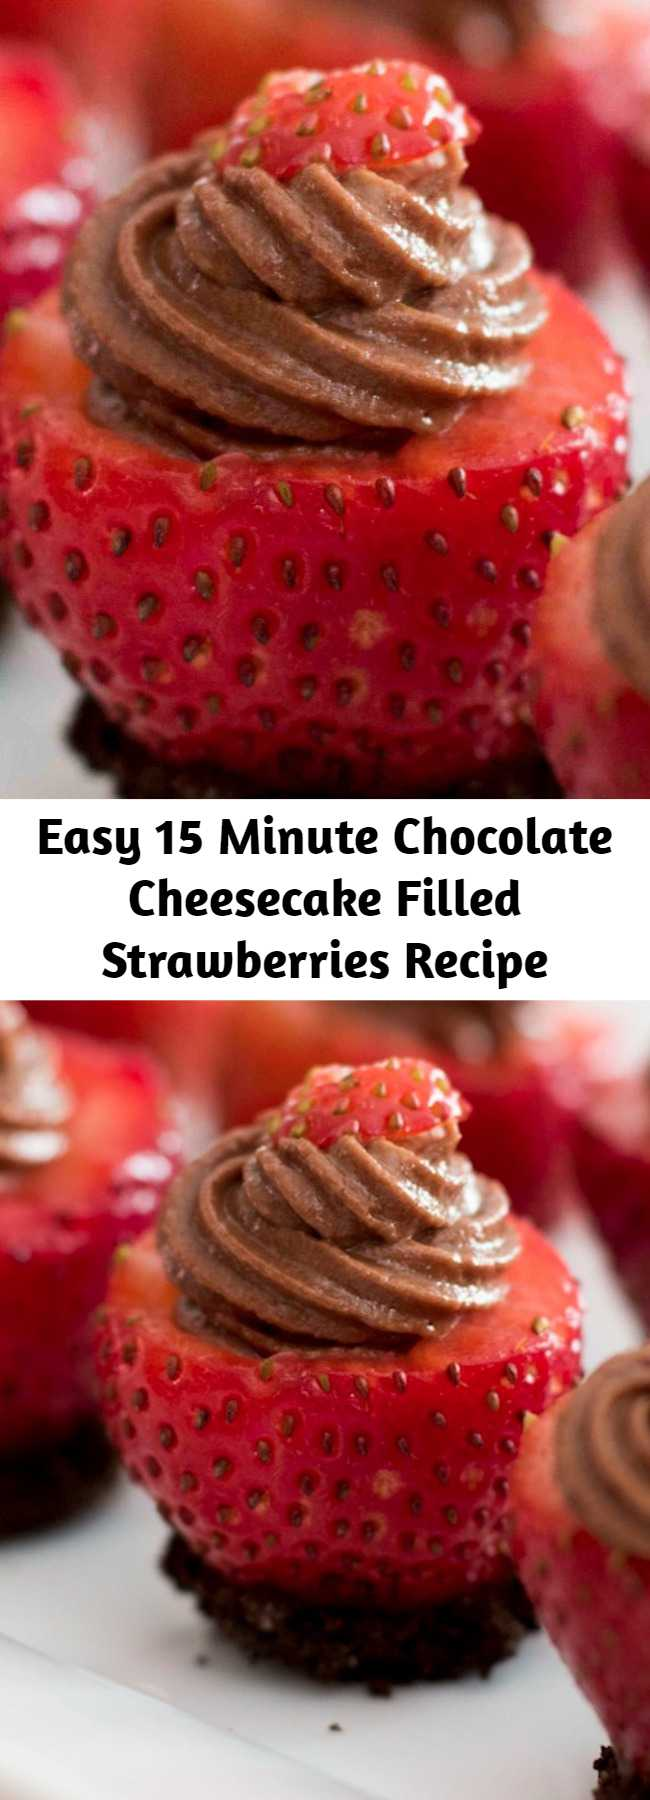 Easy 15 Minute Chocolate Cheesecake Filled Strawberries Recipe - Chocolate Cheesecake Filled Strawberries- mouthwatering and creamy chocolate cheesecake stuffed in fresh strawberries. A no-bake dessert takes only 15 minutes to make! It's perfect to make ahead of time for a party or holiday with friends and family.